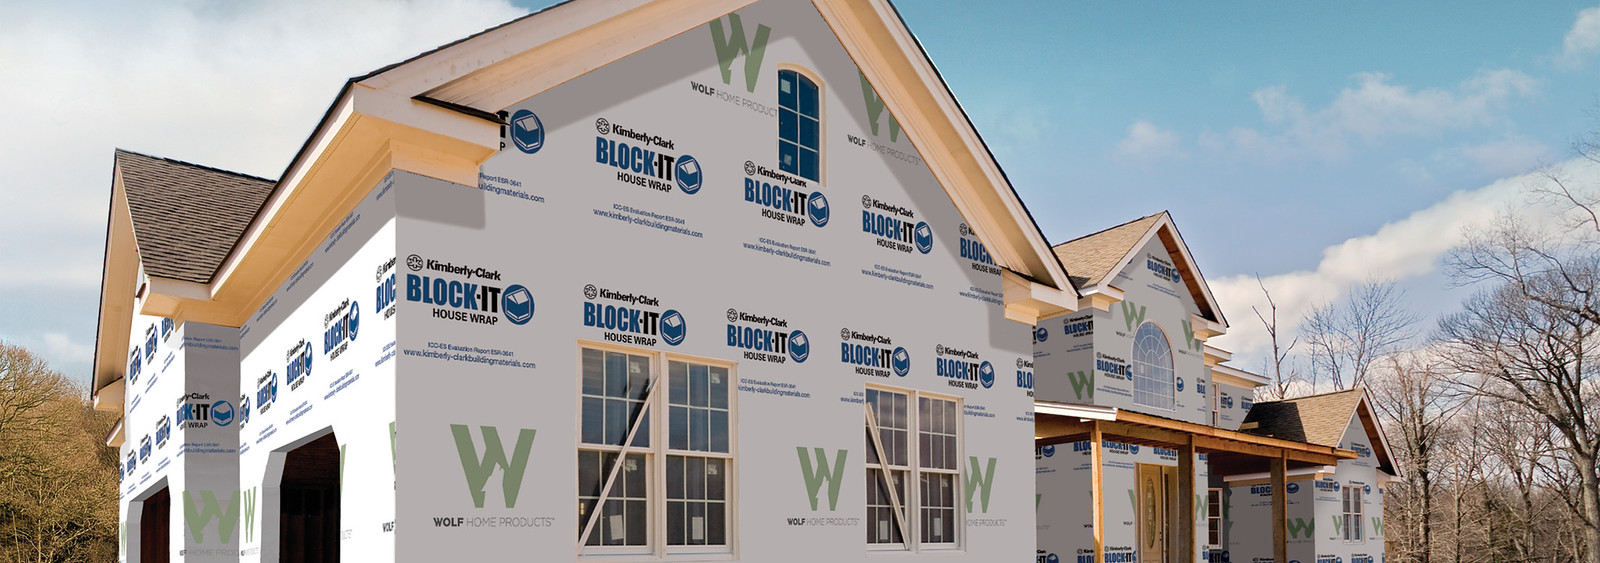 BLOCK-IT House Wrap